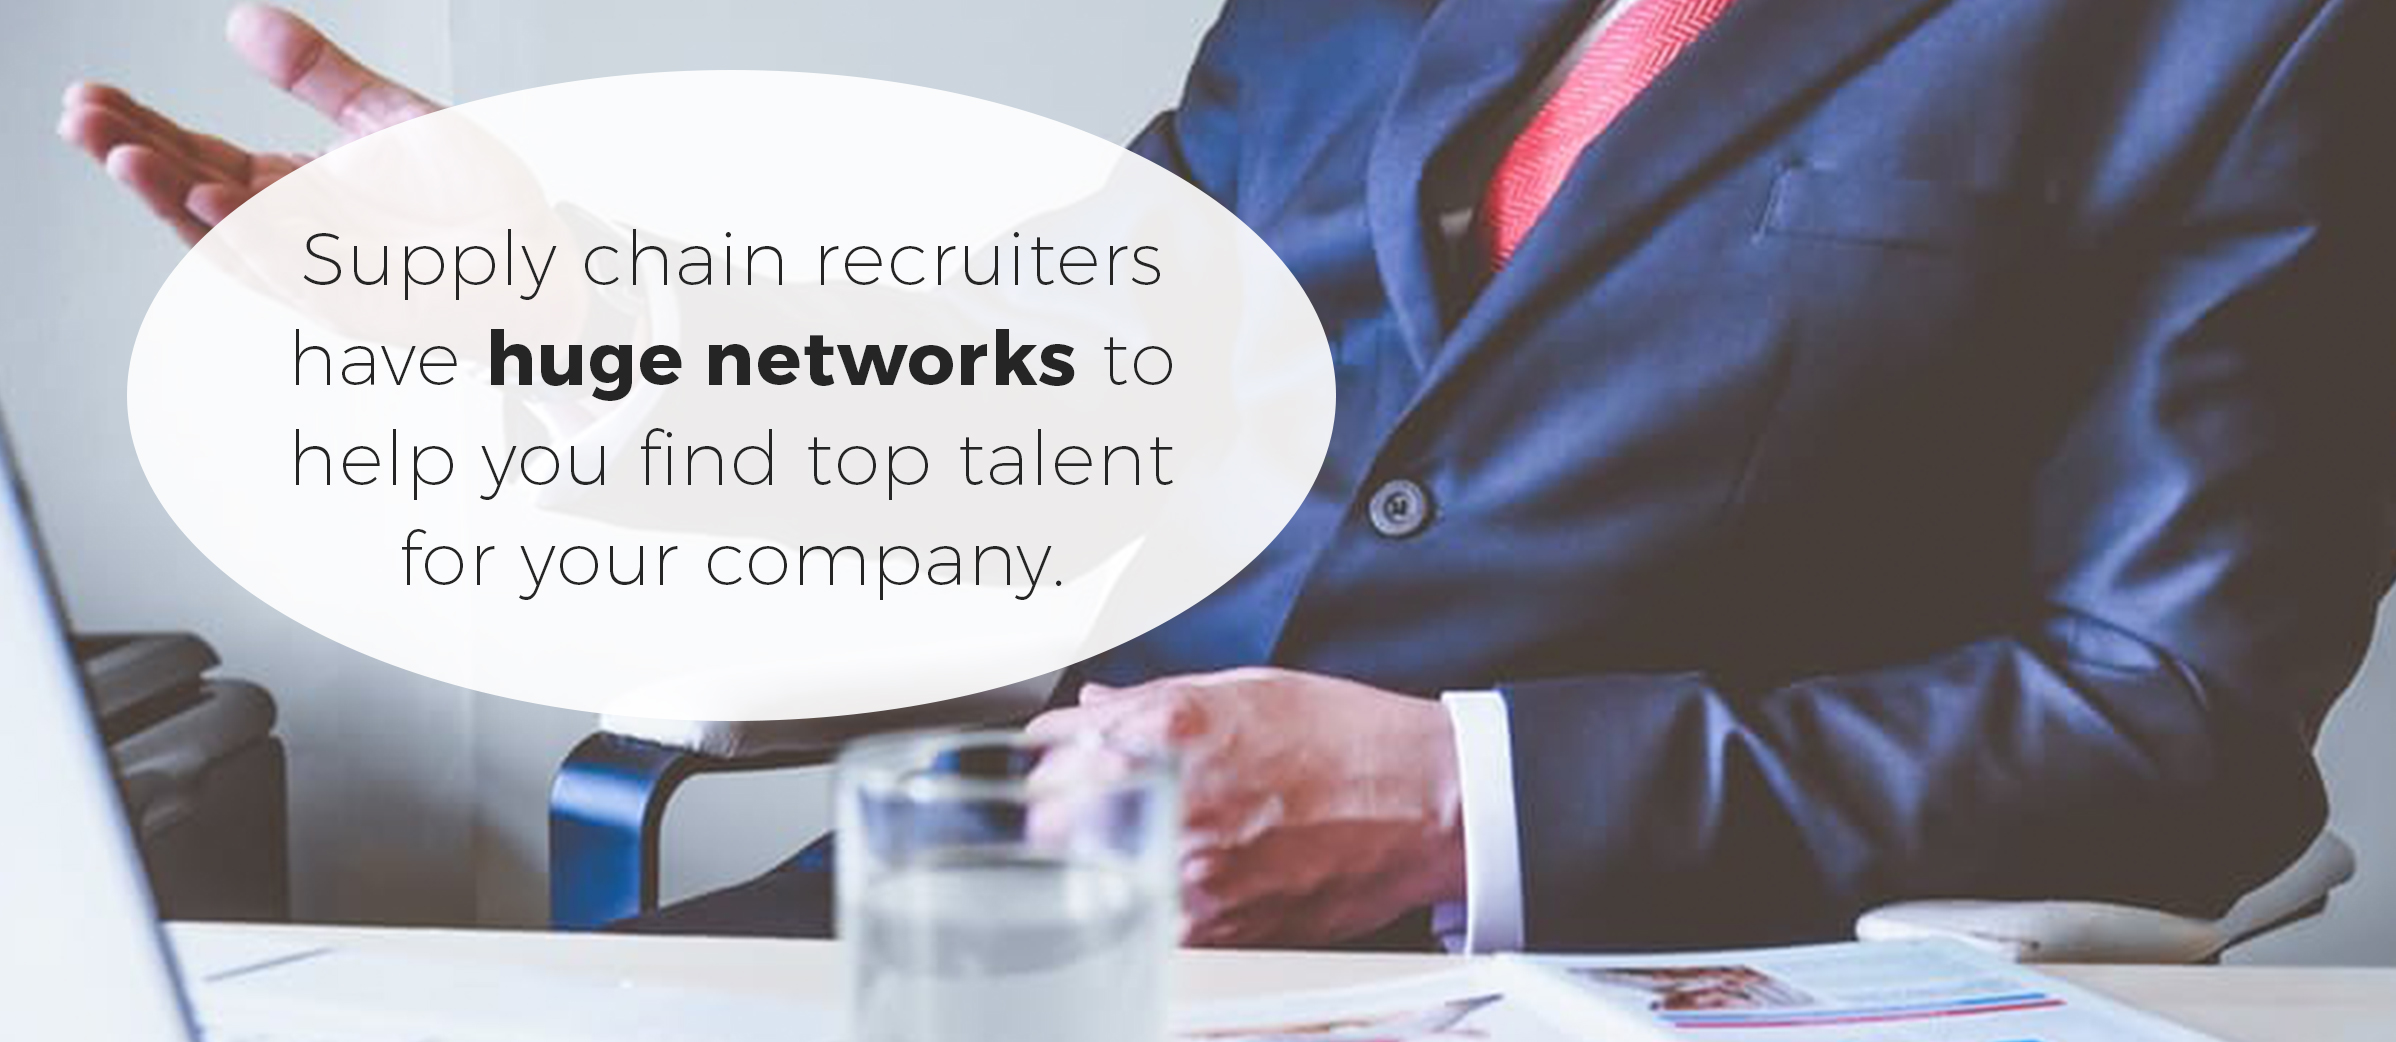 supply chain recruiters have have networks to help you find top talent for your company